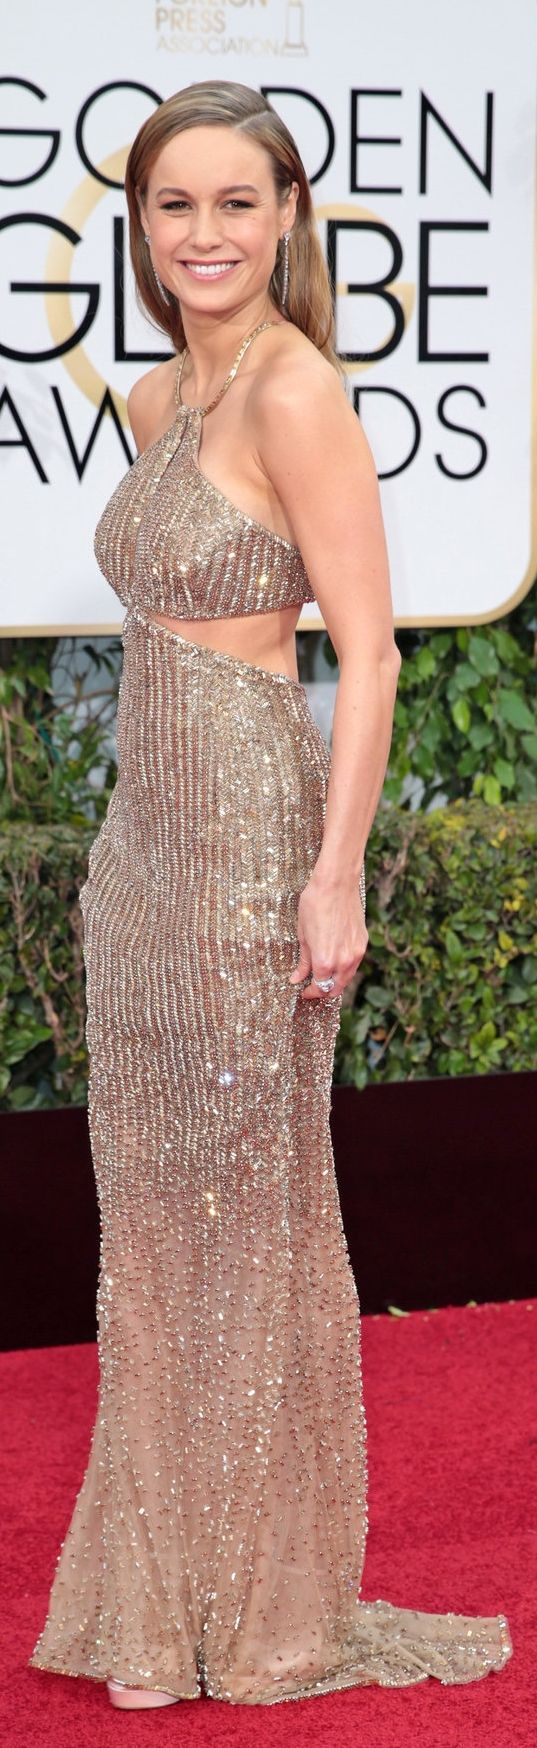 Brie Larson in Calvin Klein at the Golden Globes (Photo: Monica Almeida/The New York Times)